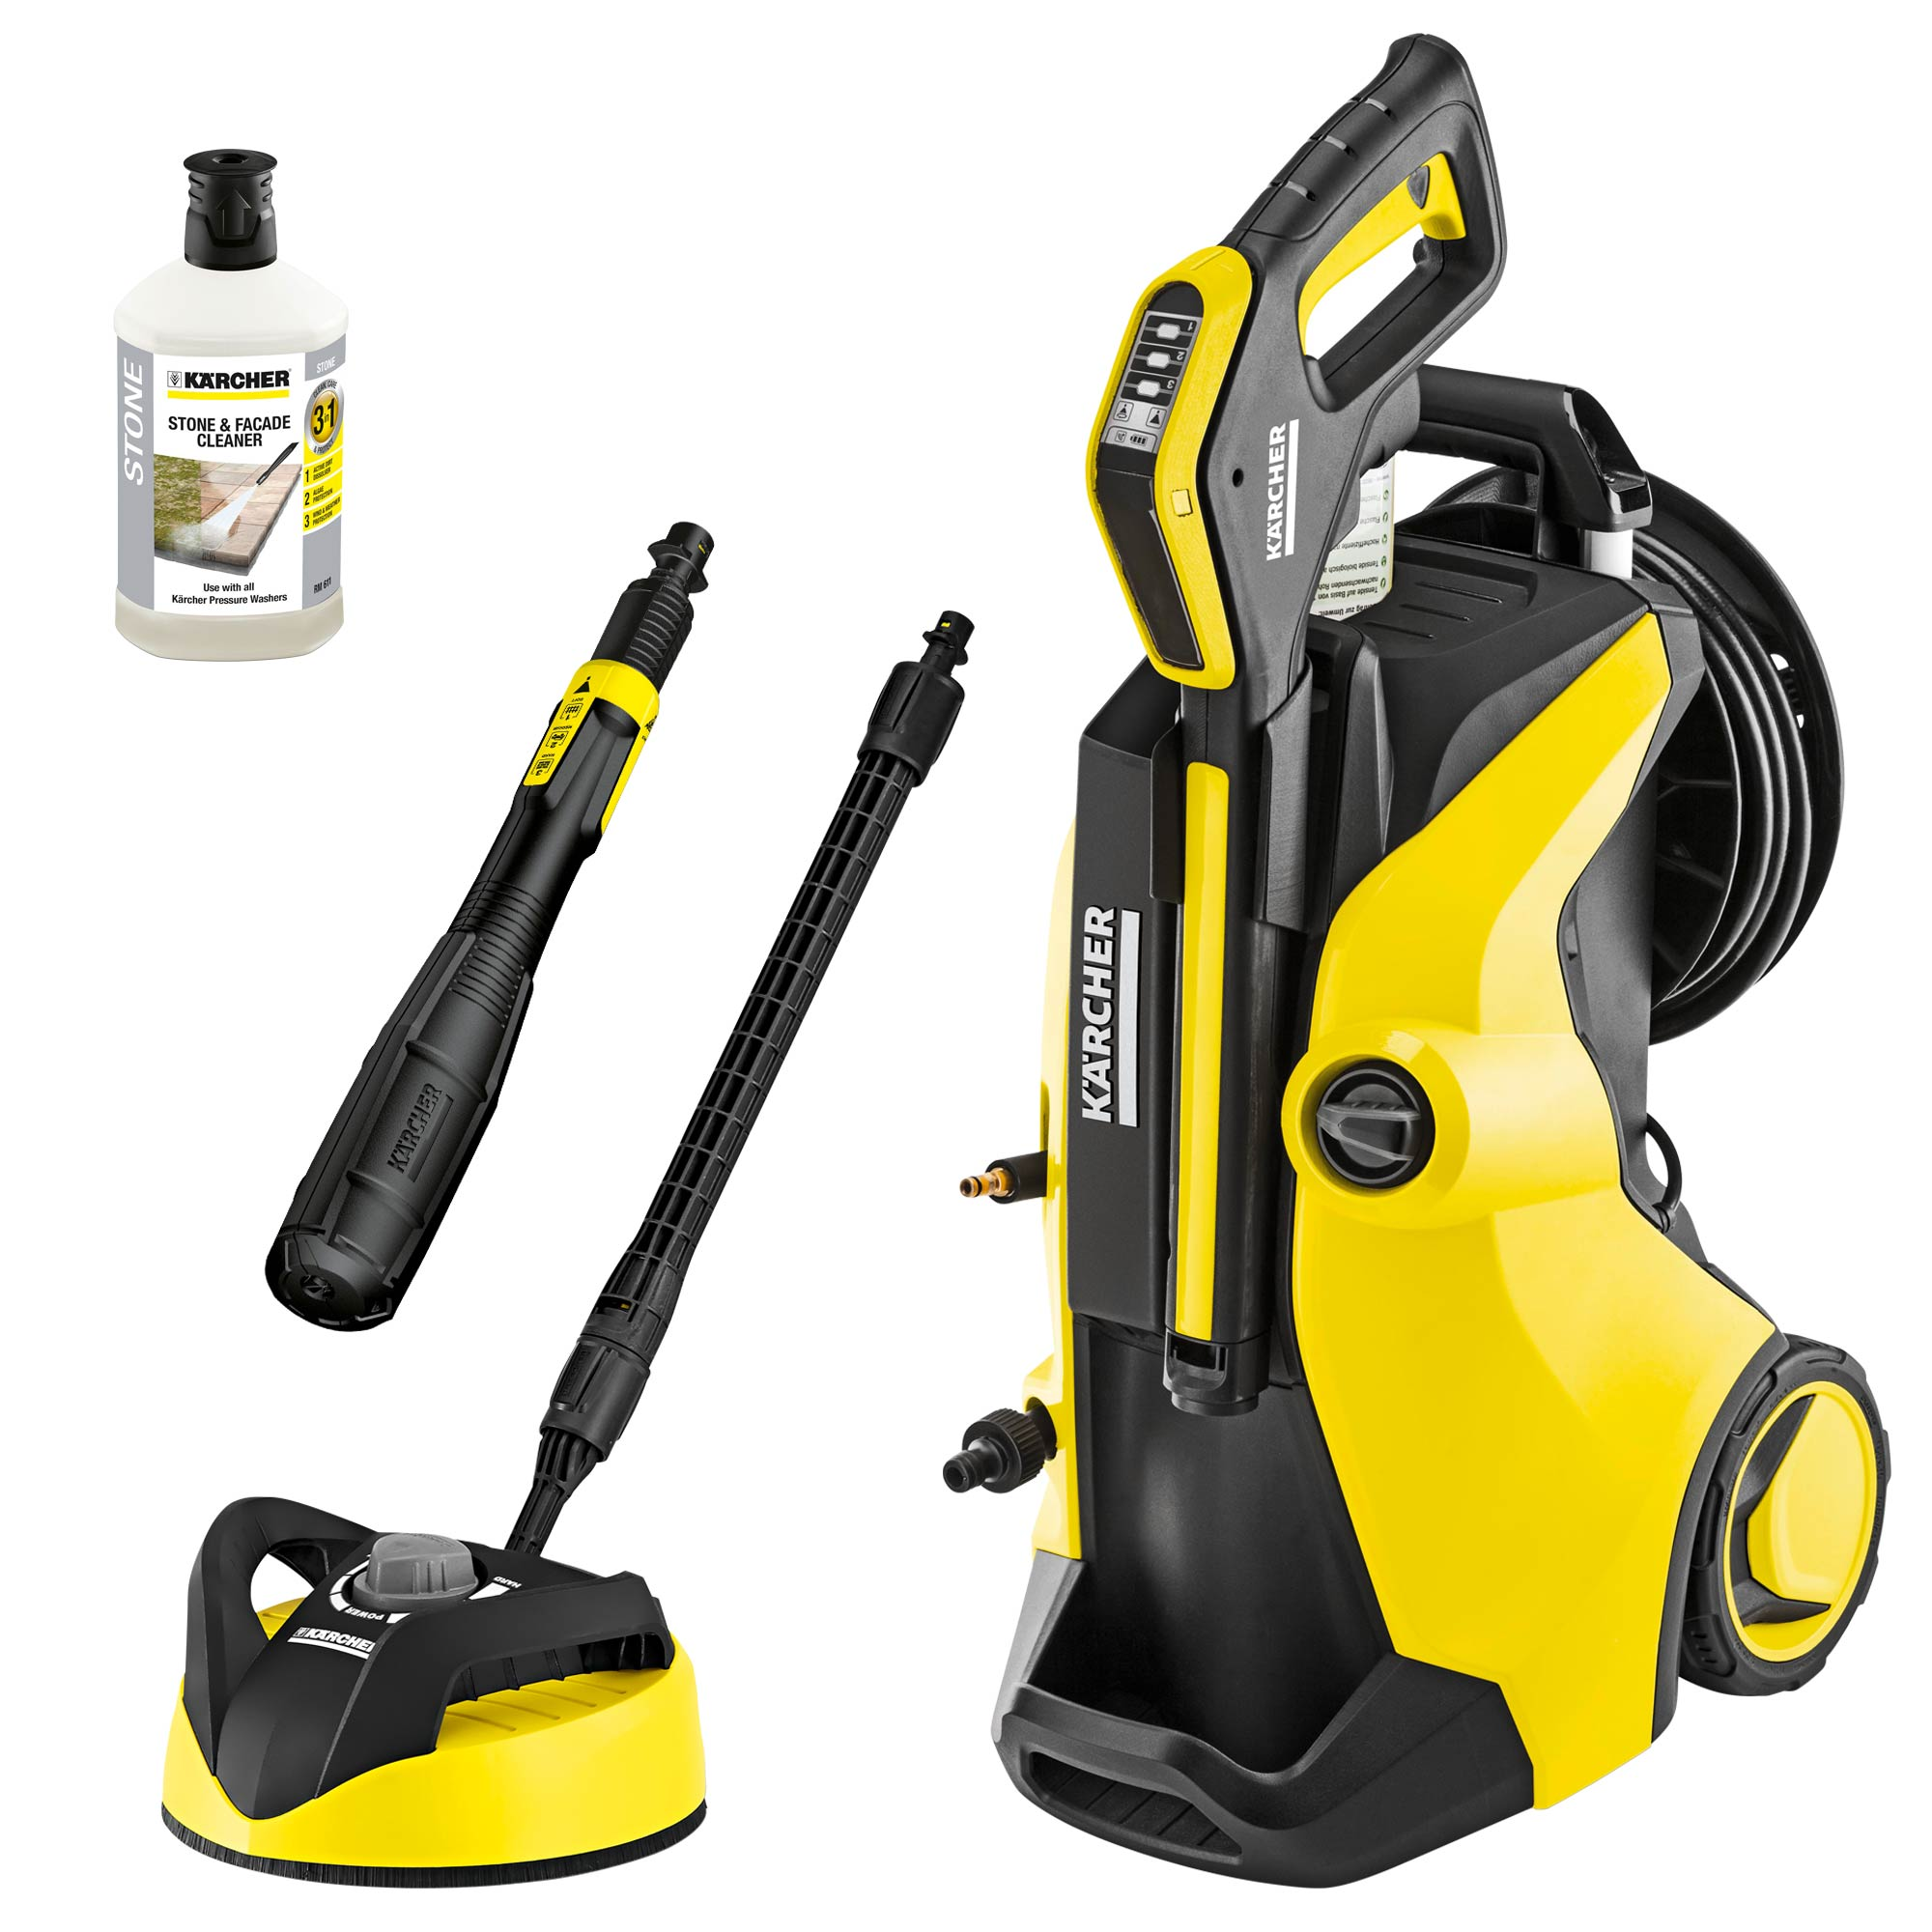 karcher 13246350 karcher k5 premium full control plus home